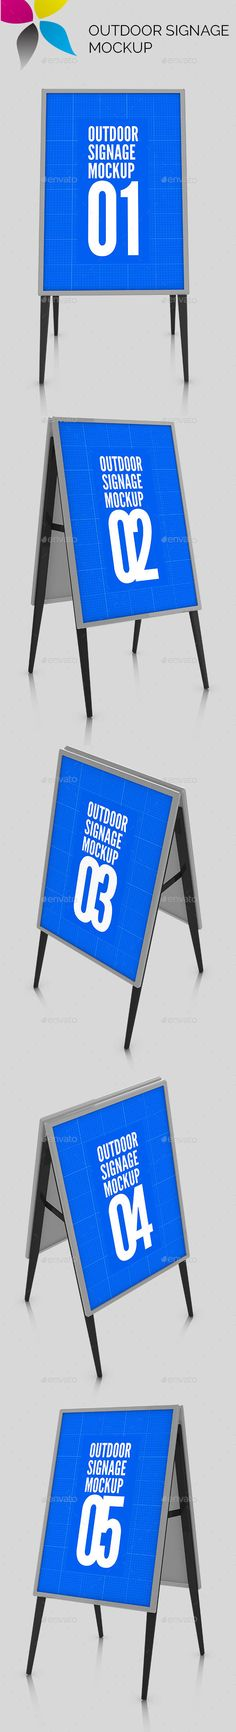 Outdoor Signage Mockup